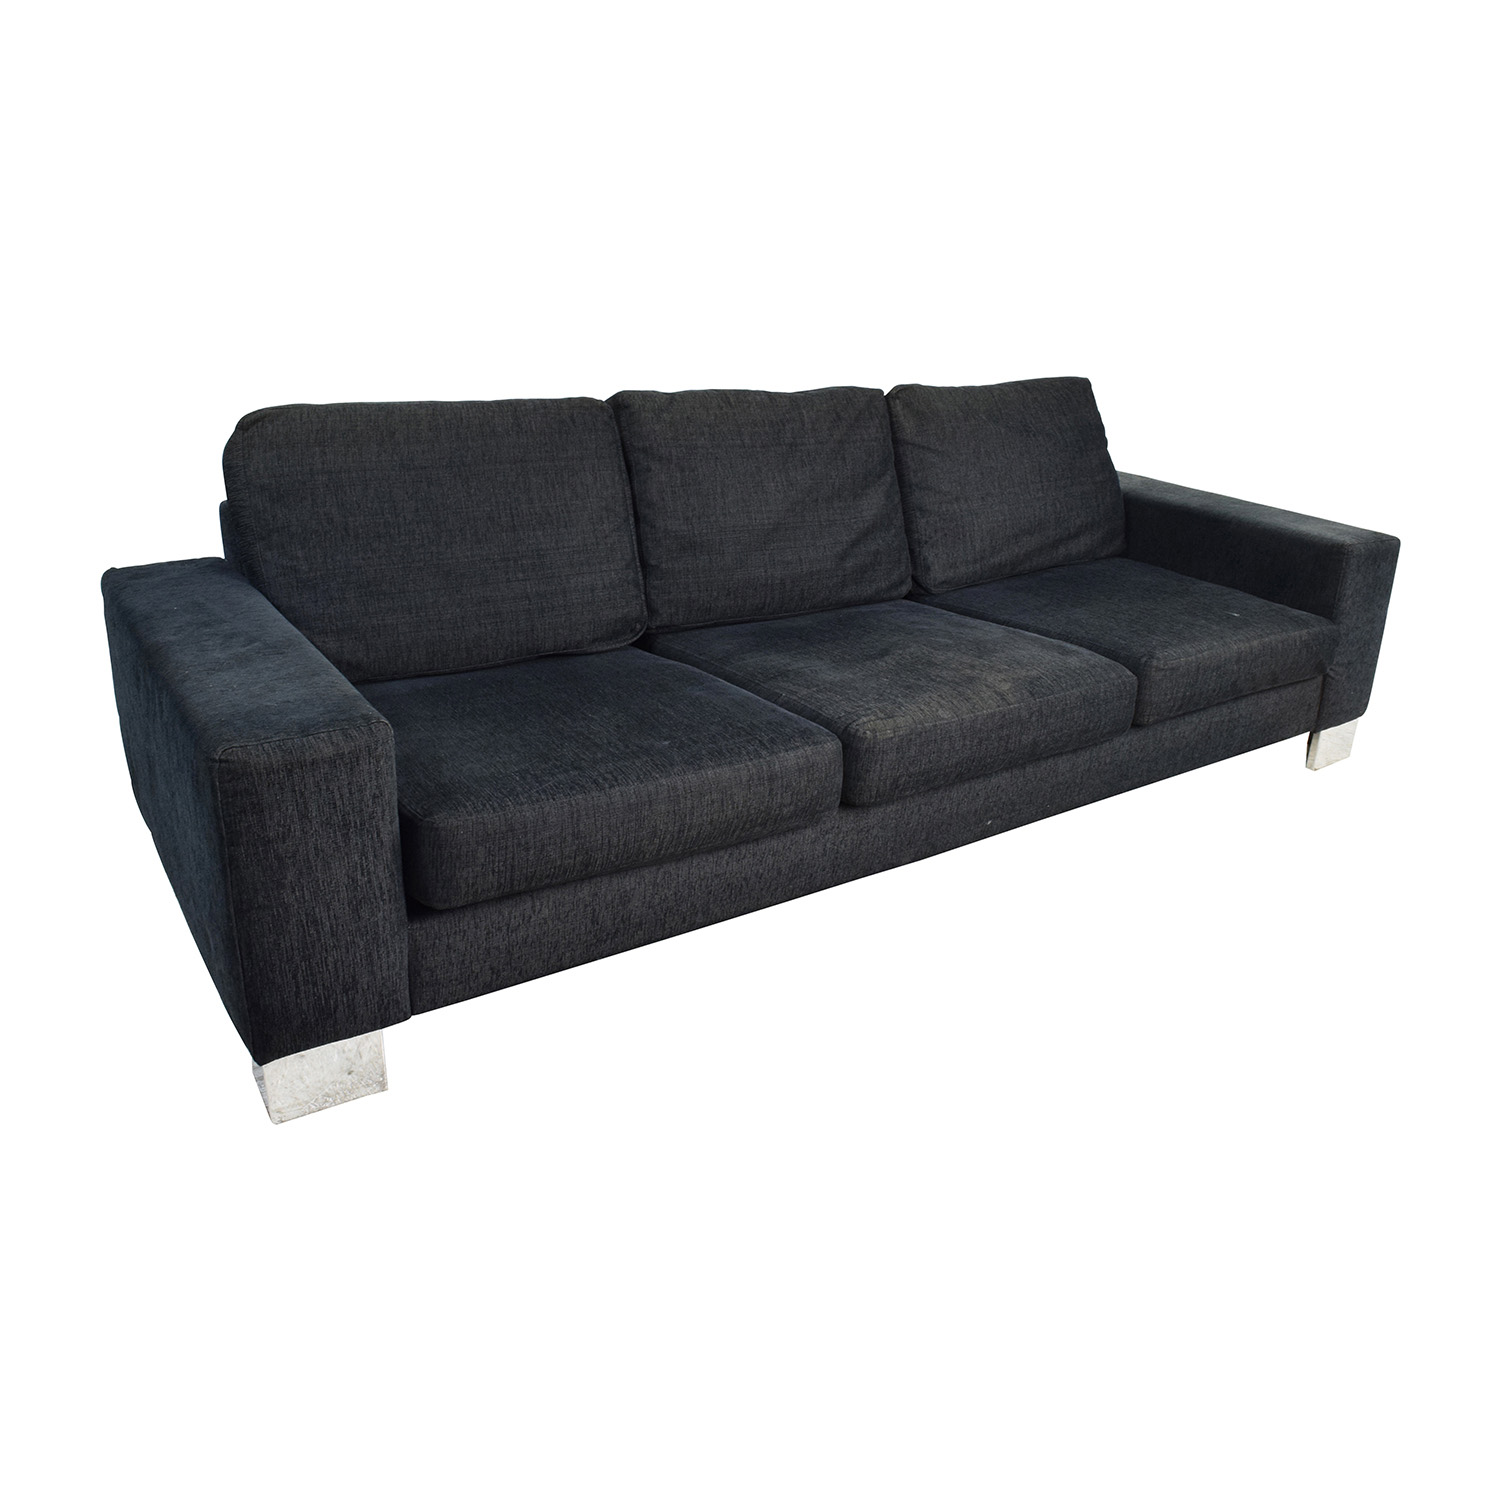 90 off boconcept boconcept cenova three seater brown sofa sofas. Black Bedroom Furniture Sets. Home Design Ideas